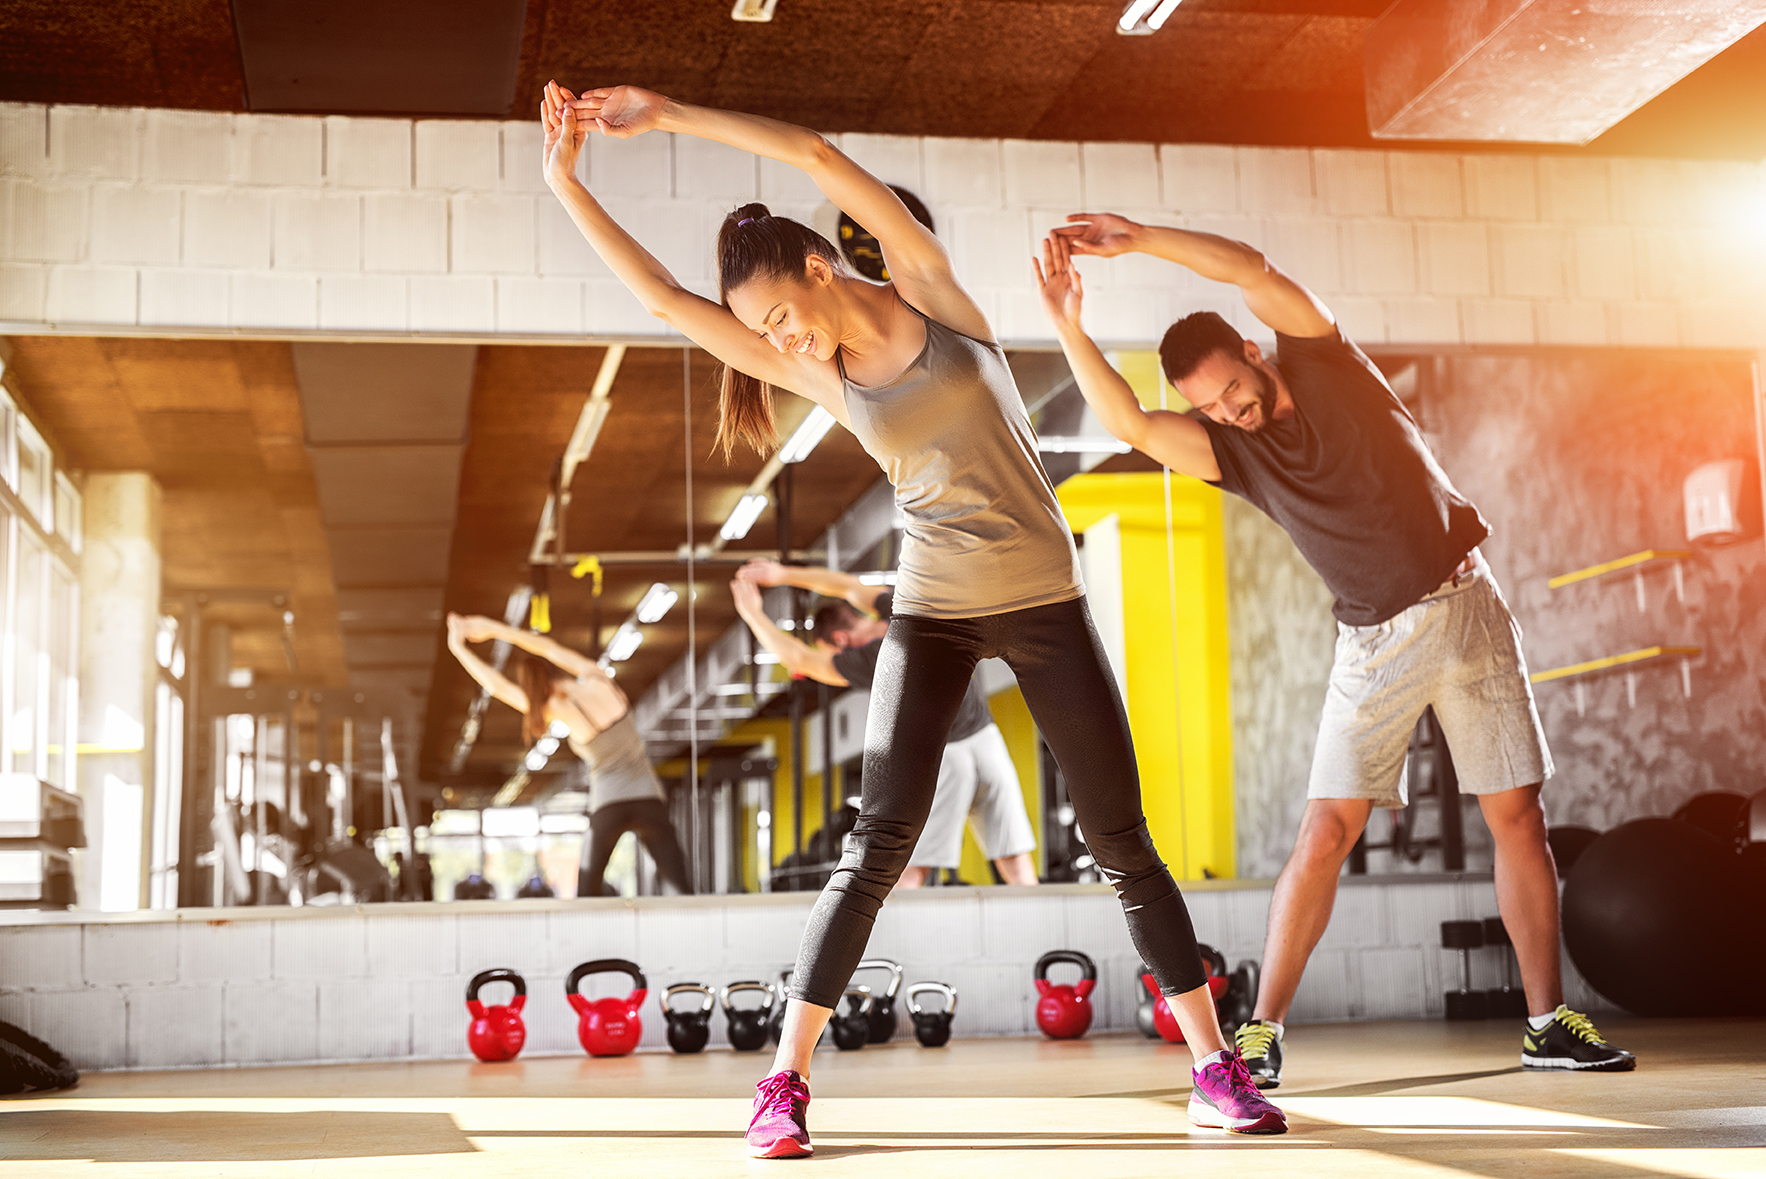 Apps for gyms and health clubs